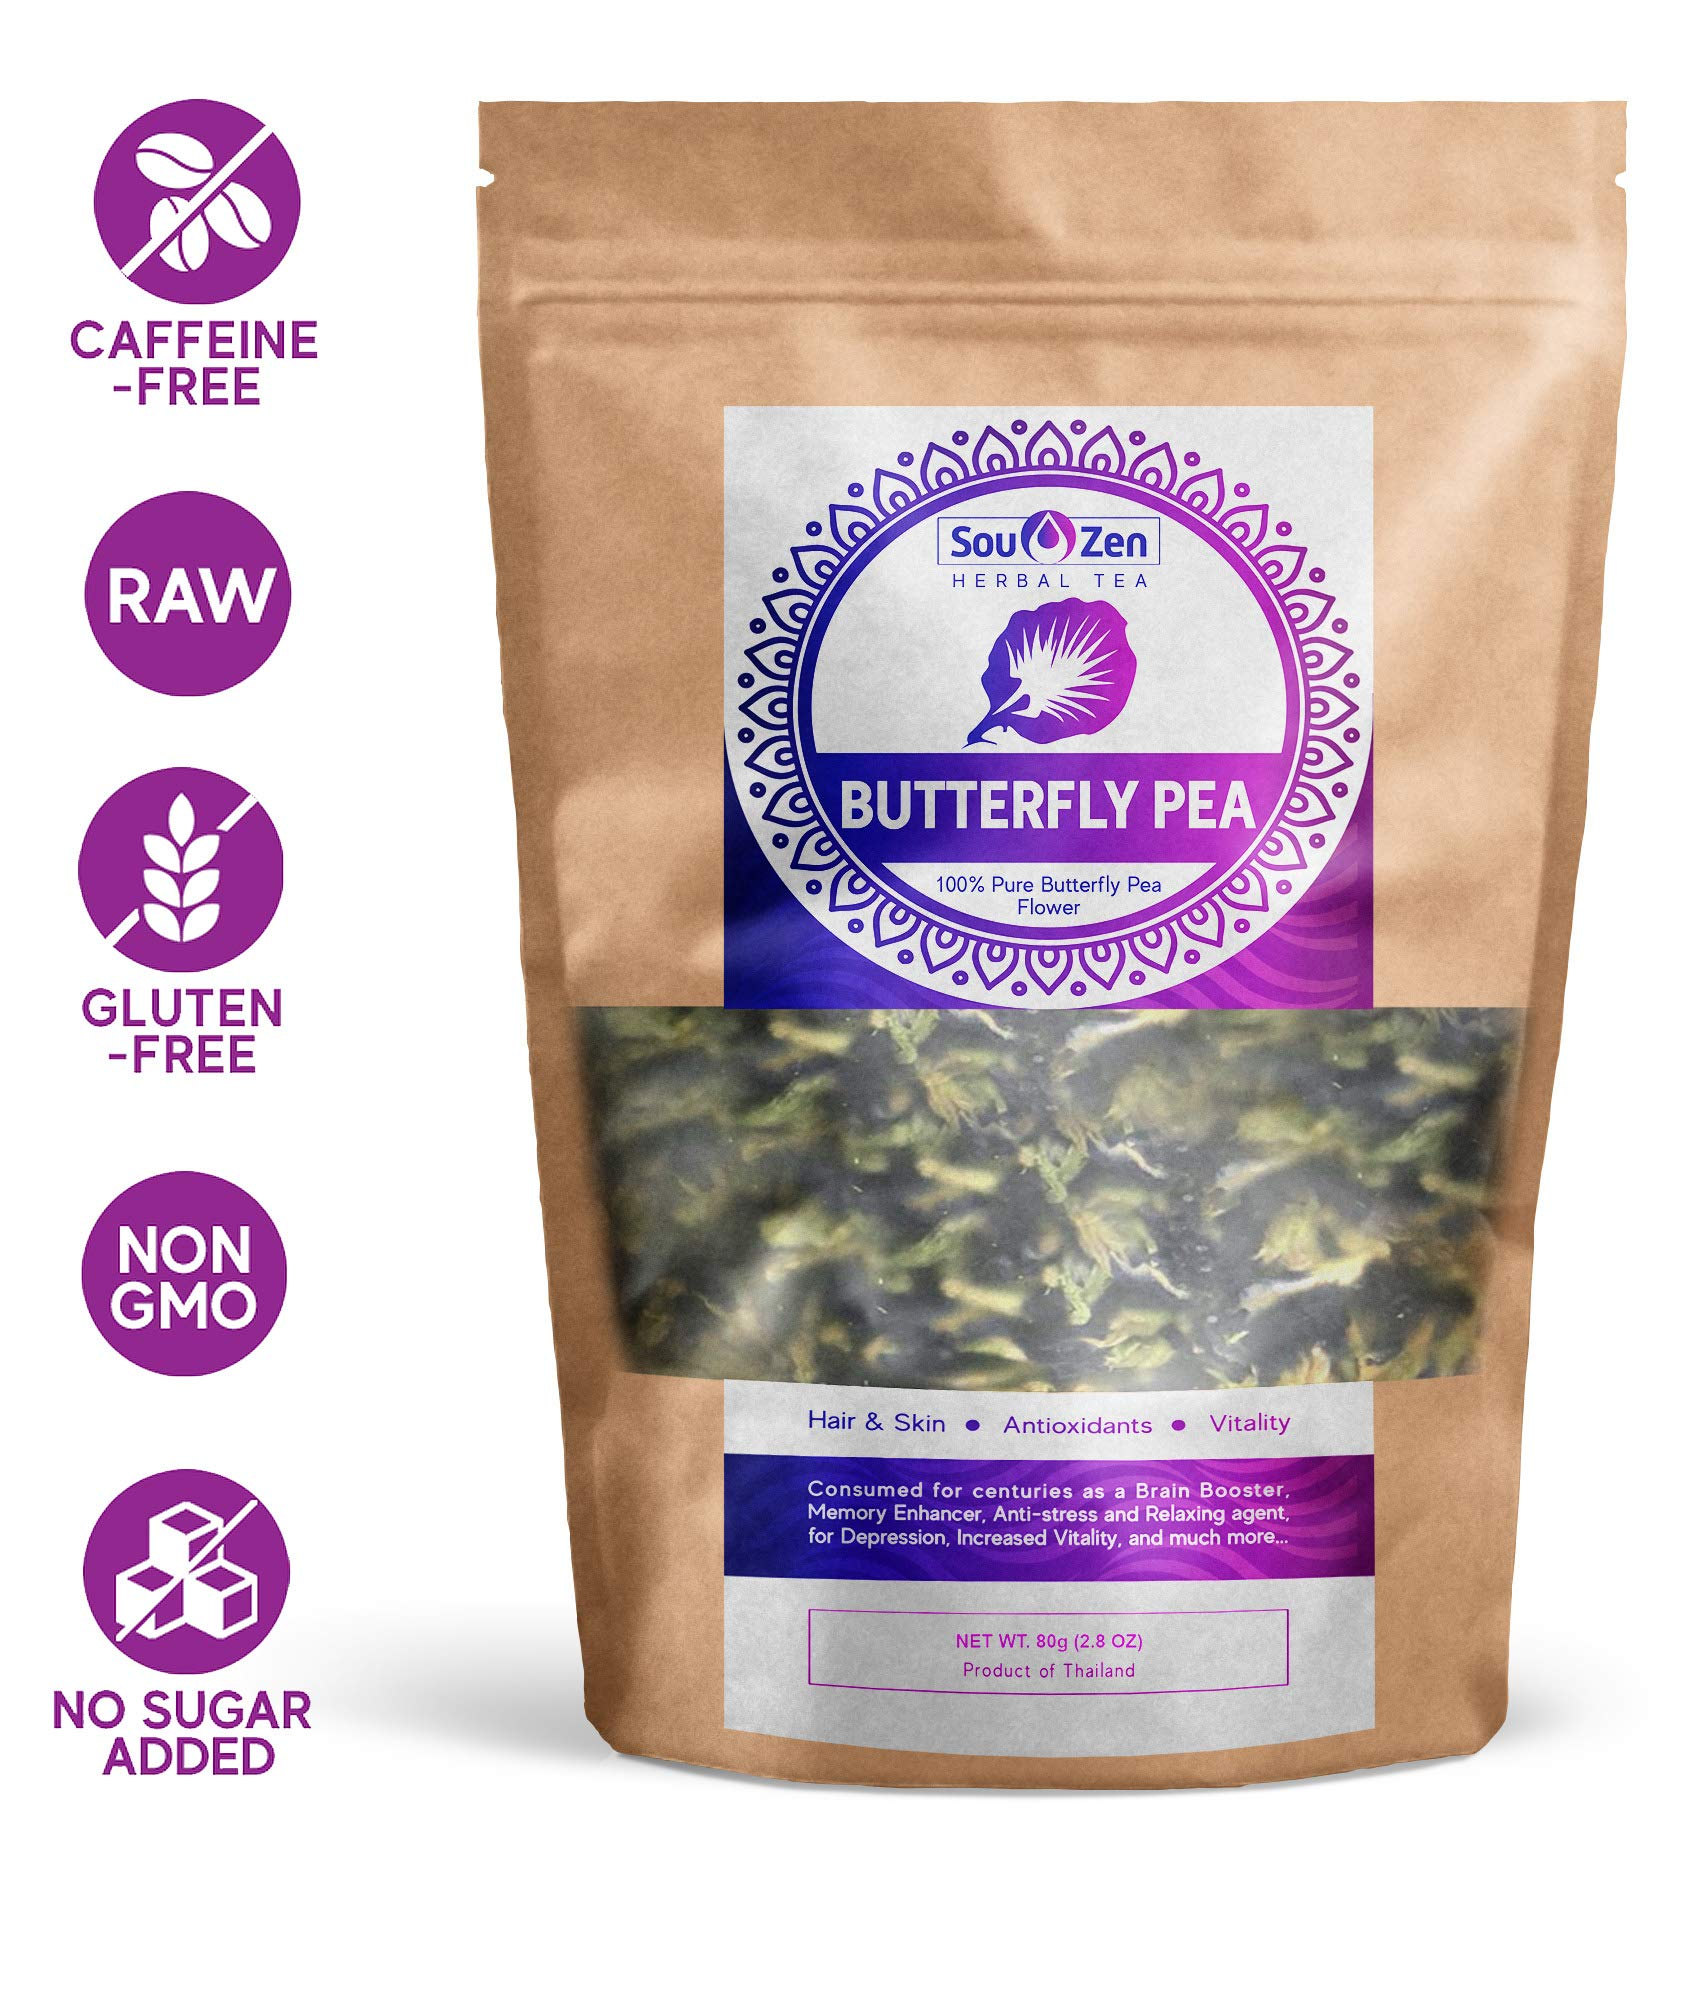 Sou Zen Butterfly Pea Flowers (80 g) Dried Tea Leaves | Natural, Raw Drink Mix w/Antioxidants, Organic Nootropics | Promotes Relaxing Calm, Stress Relief | Thai Herbal